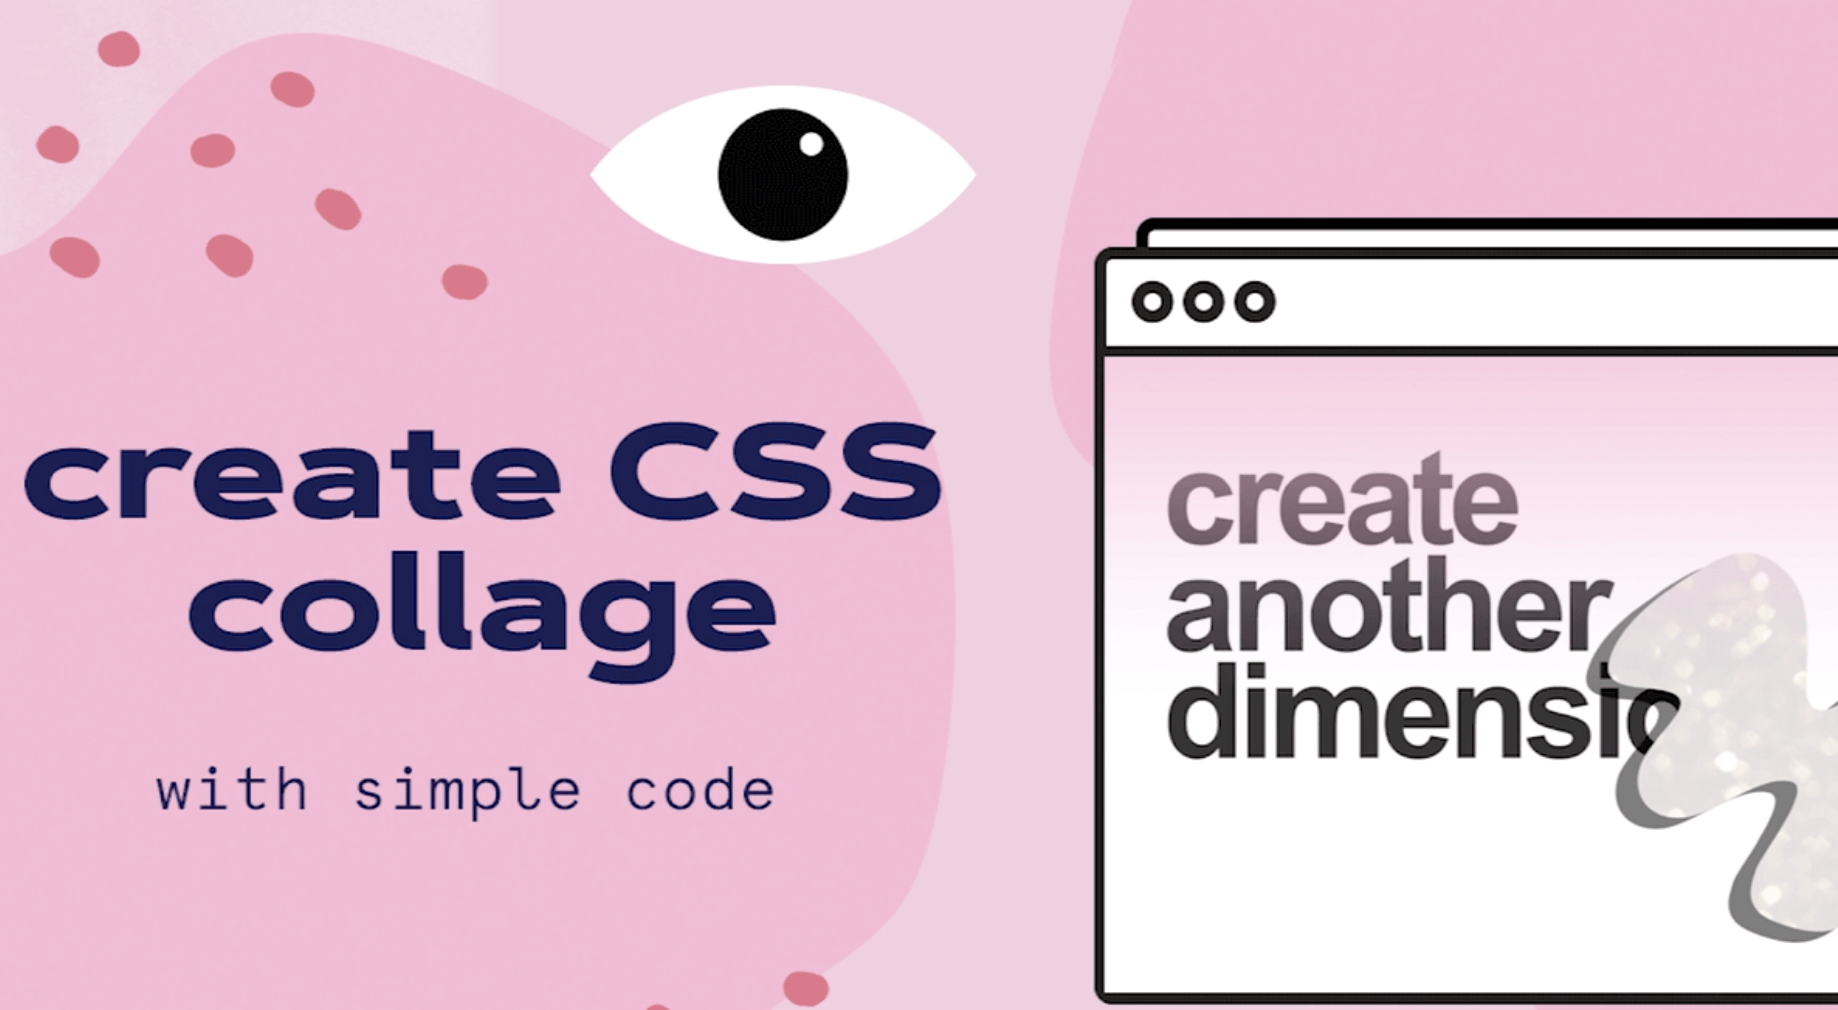 css collage course image